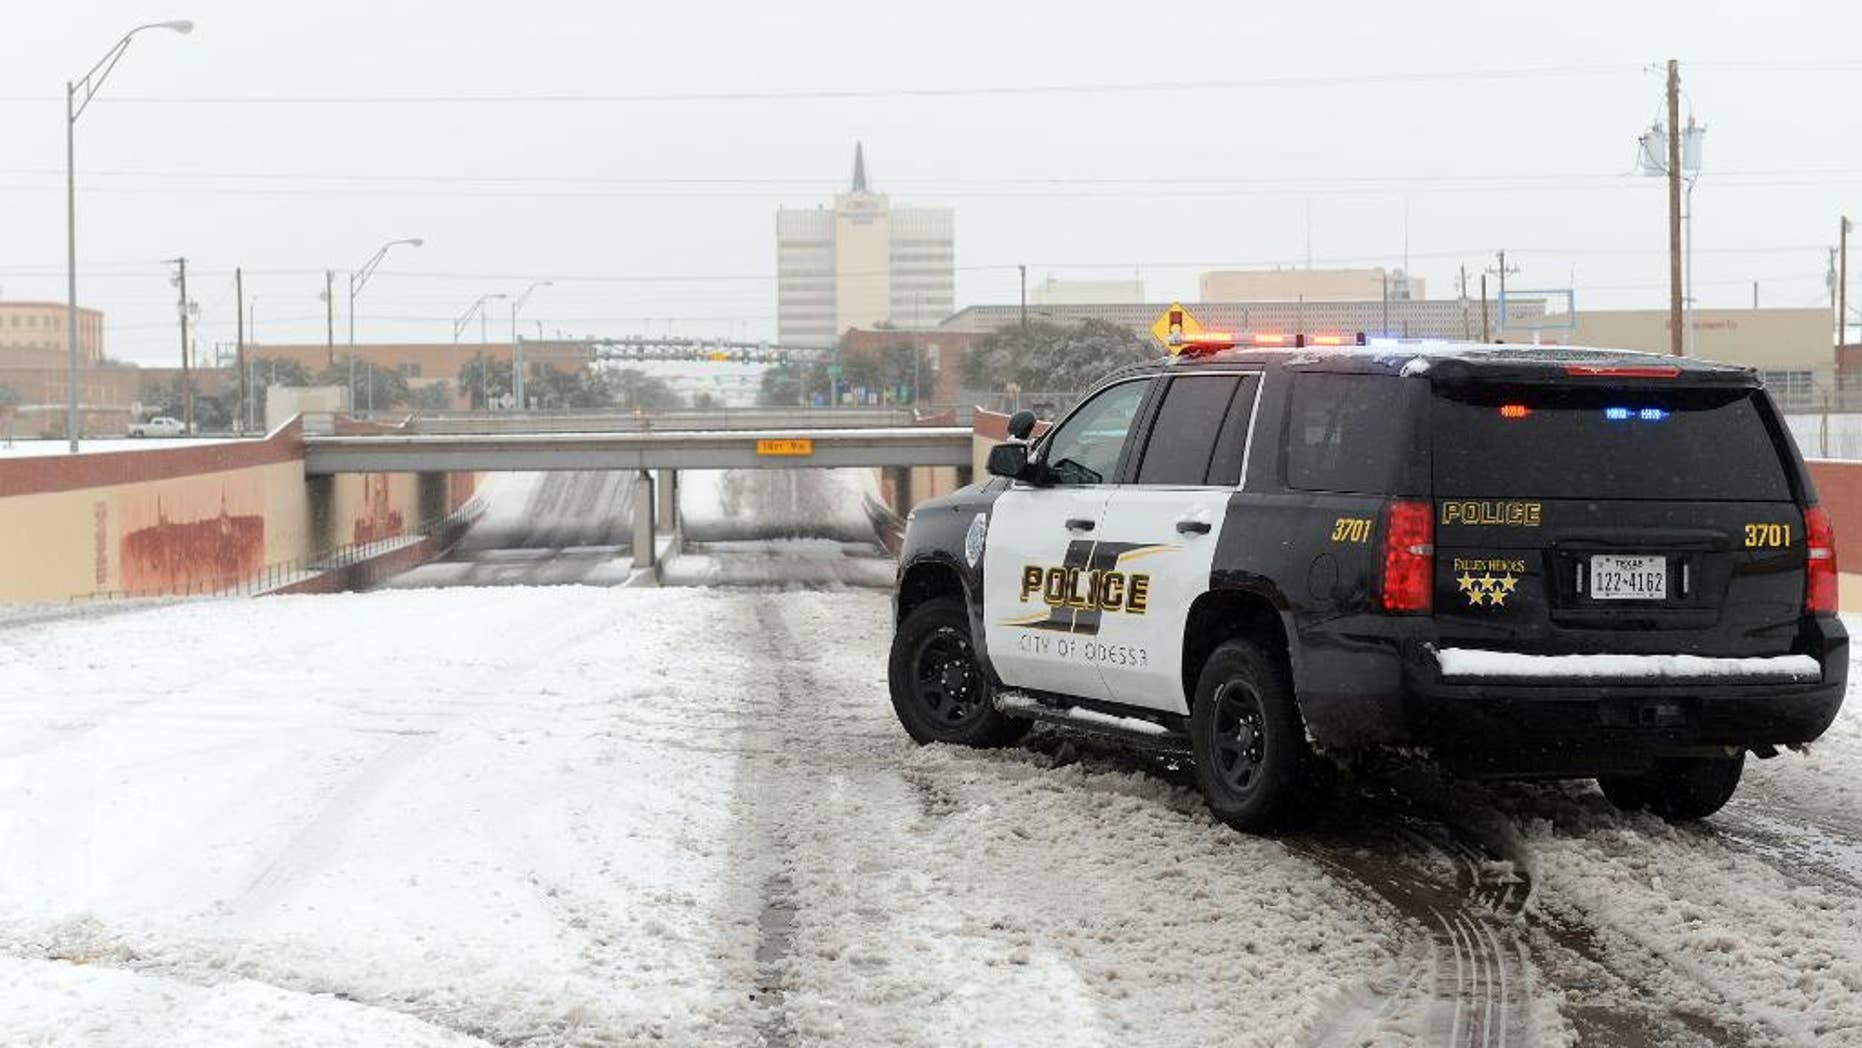 Odessa Police block access to the railroad underpass on Grant Avenue near Second Street, Sunday, Dec. 27, 2015, in Odessa, Texas. Nearly all of Interstate 40 in Texas, the main east-west highway through the Texas Panhandle, has been shut because of the snowstorm pummeling the area. The Texas Department of Public Safety says only a small section of the highway within Amarillo is not closed. (Mark Sterkel/Odessa American via AP) MANDATORY CREDIT